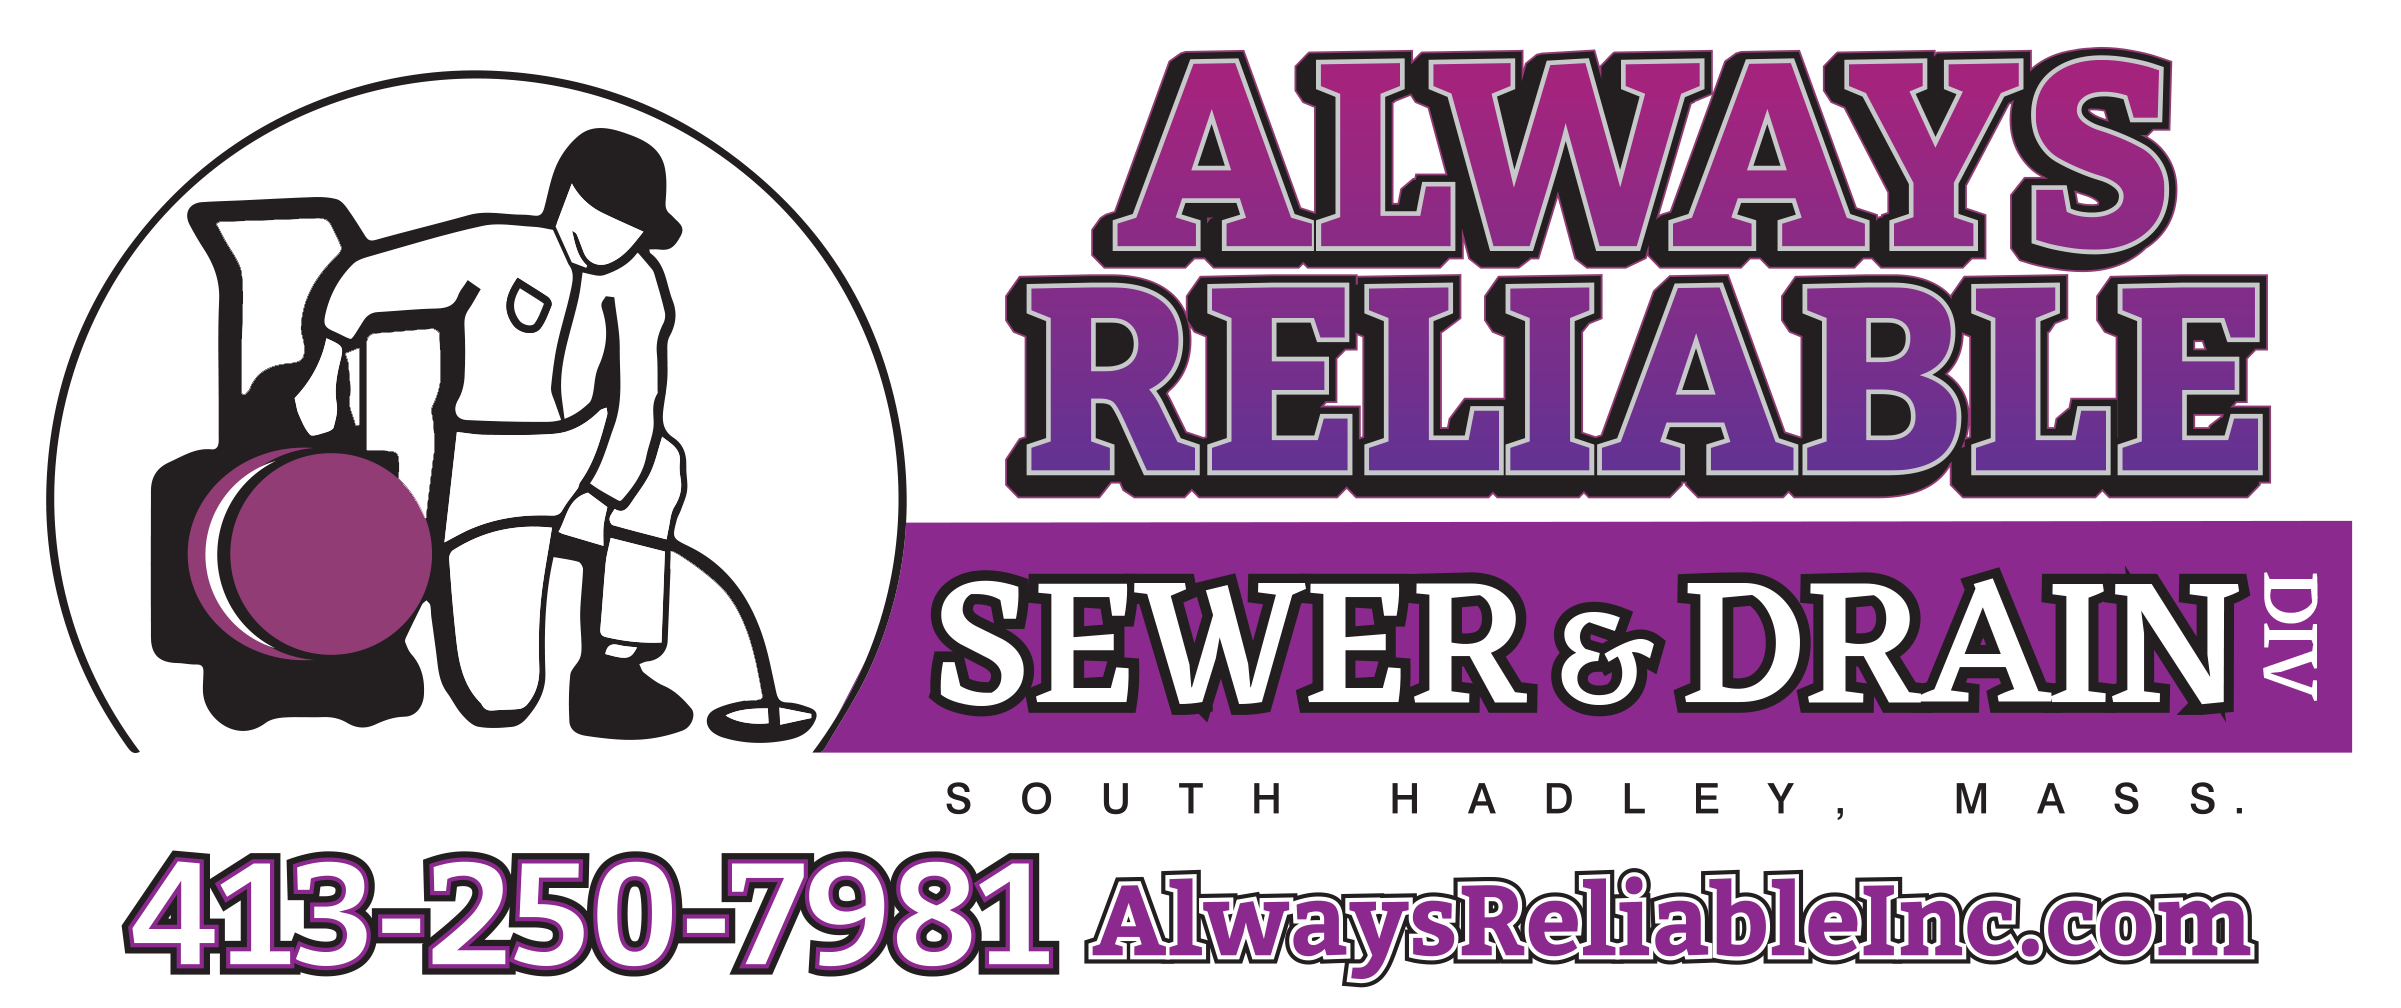 Sewer And Drain Always Reliable Excavating